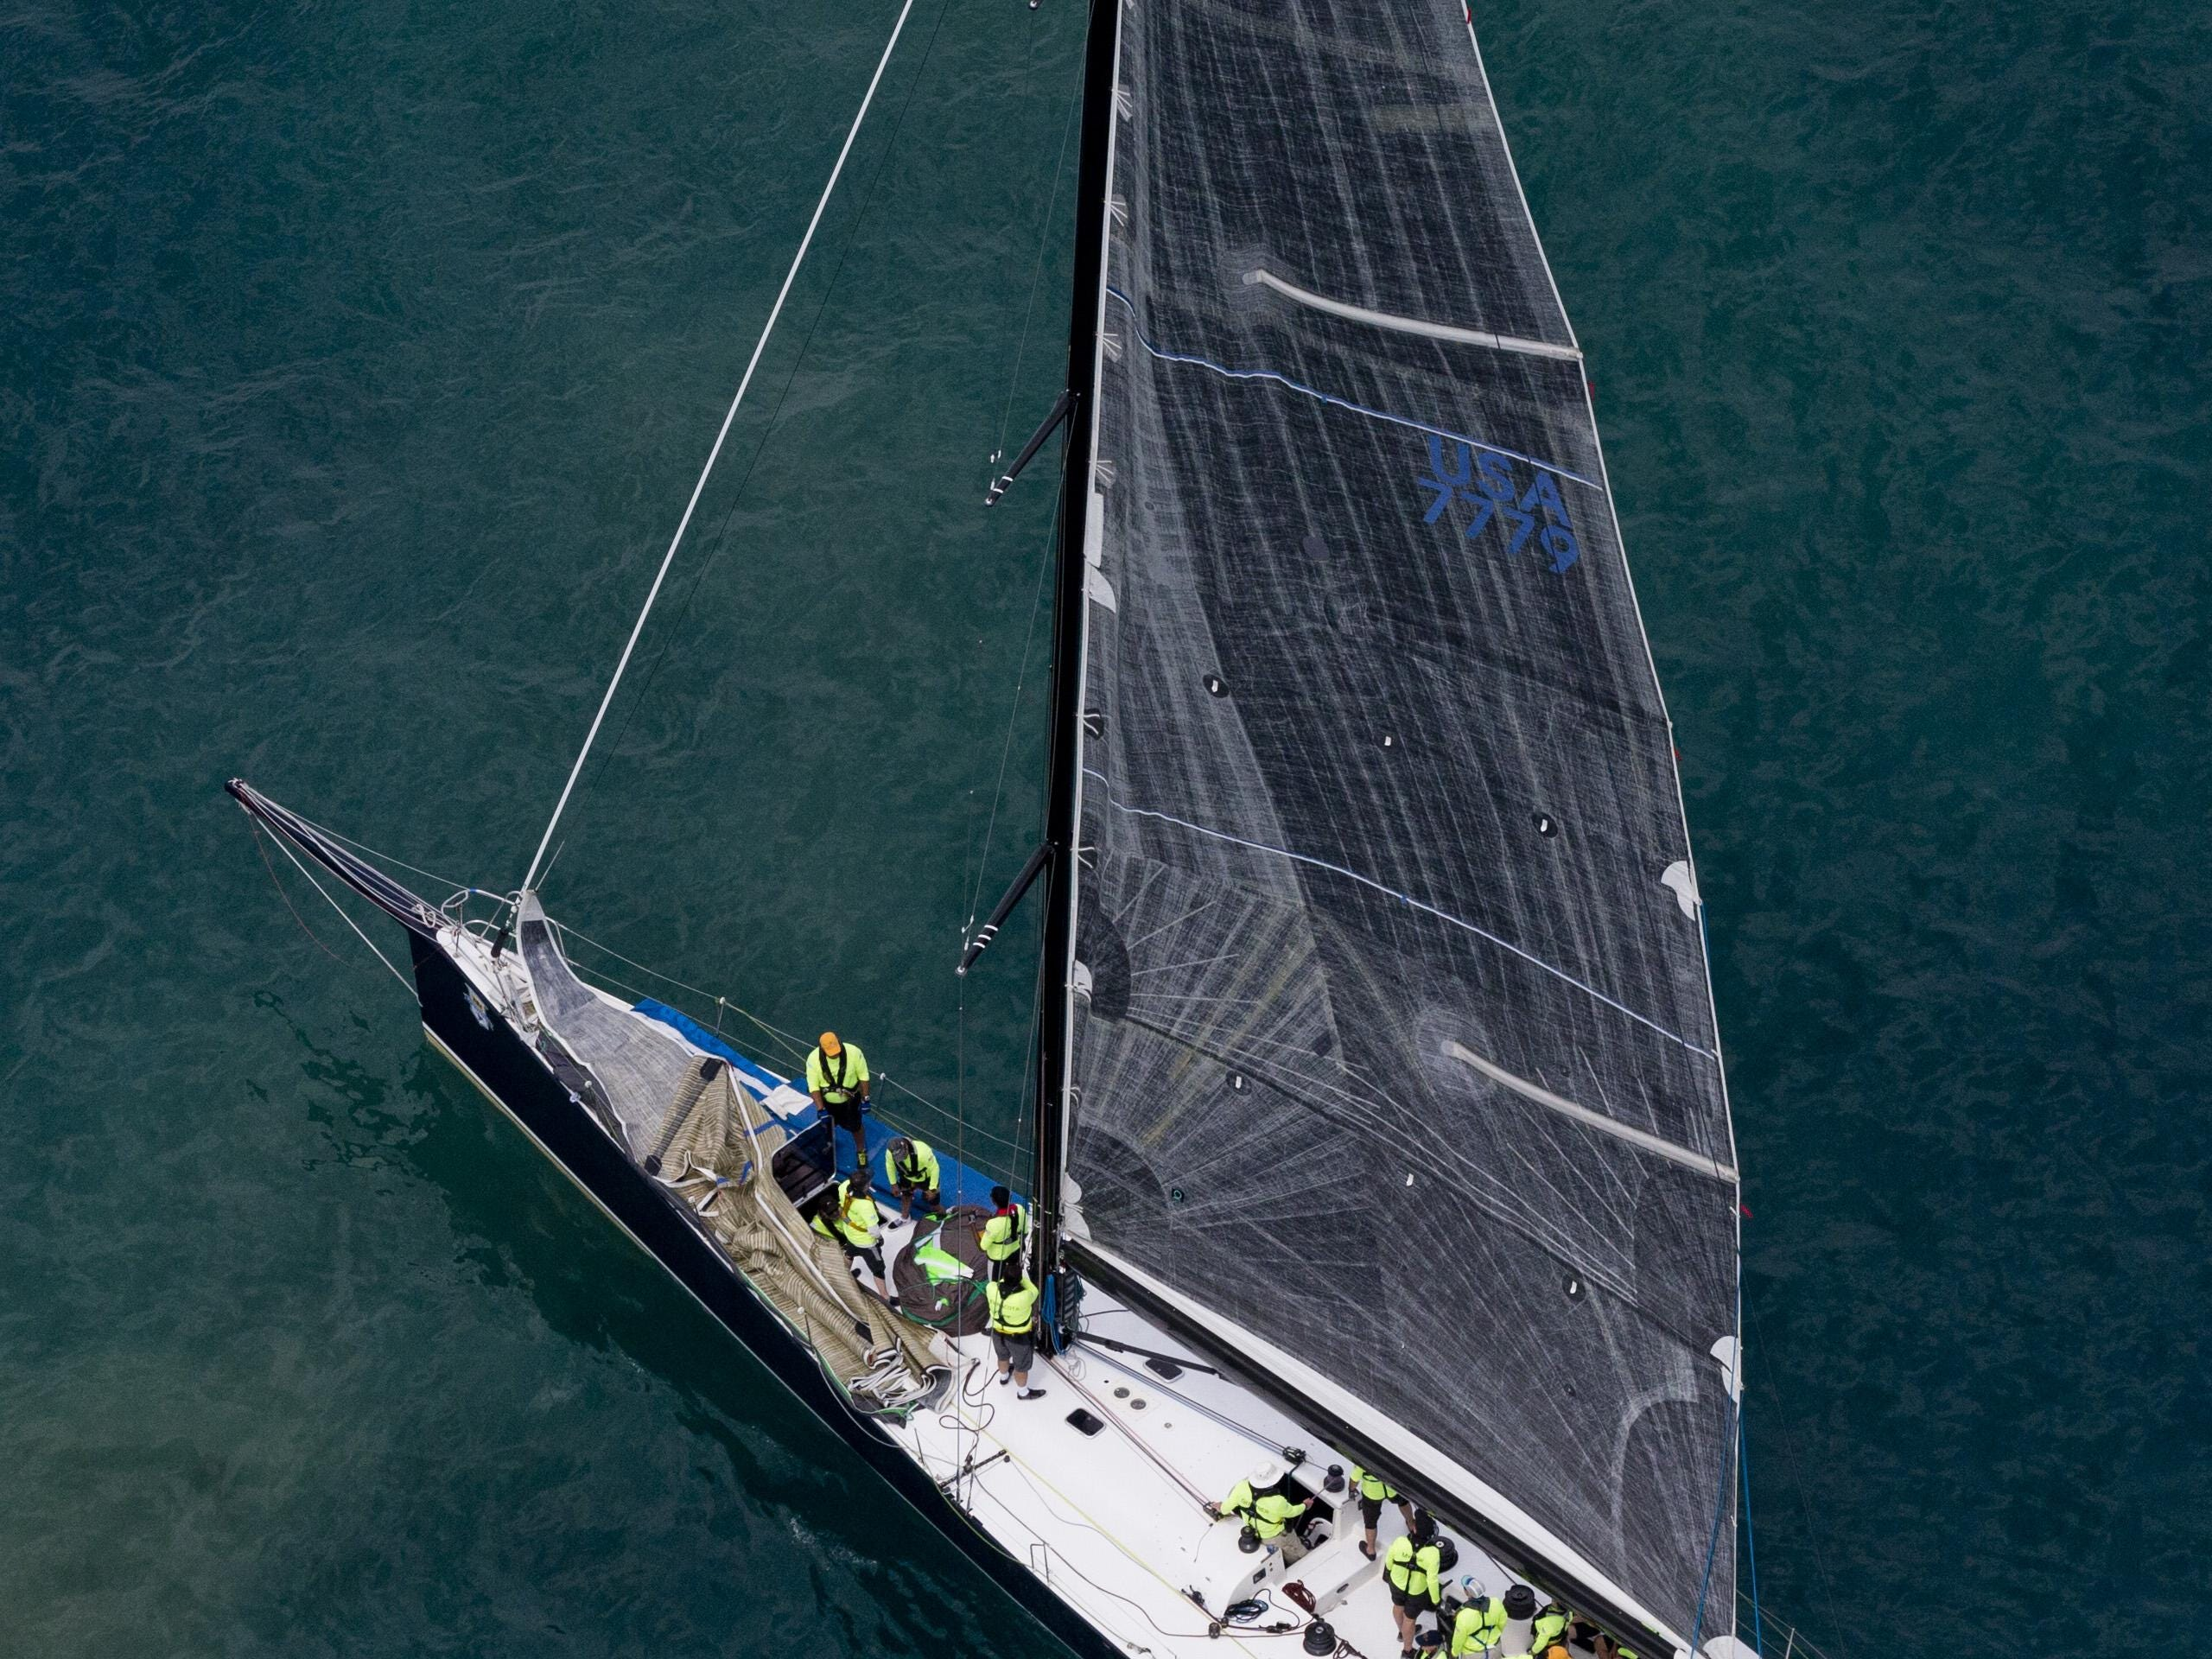 Ocean, of Chicago Yacht Club, competes in Class A during the start of the Port Huron-to-Mackinac Island sailboat race Saturday on Lake Huron.